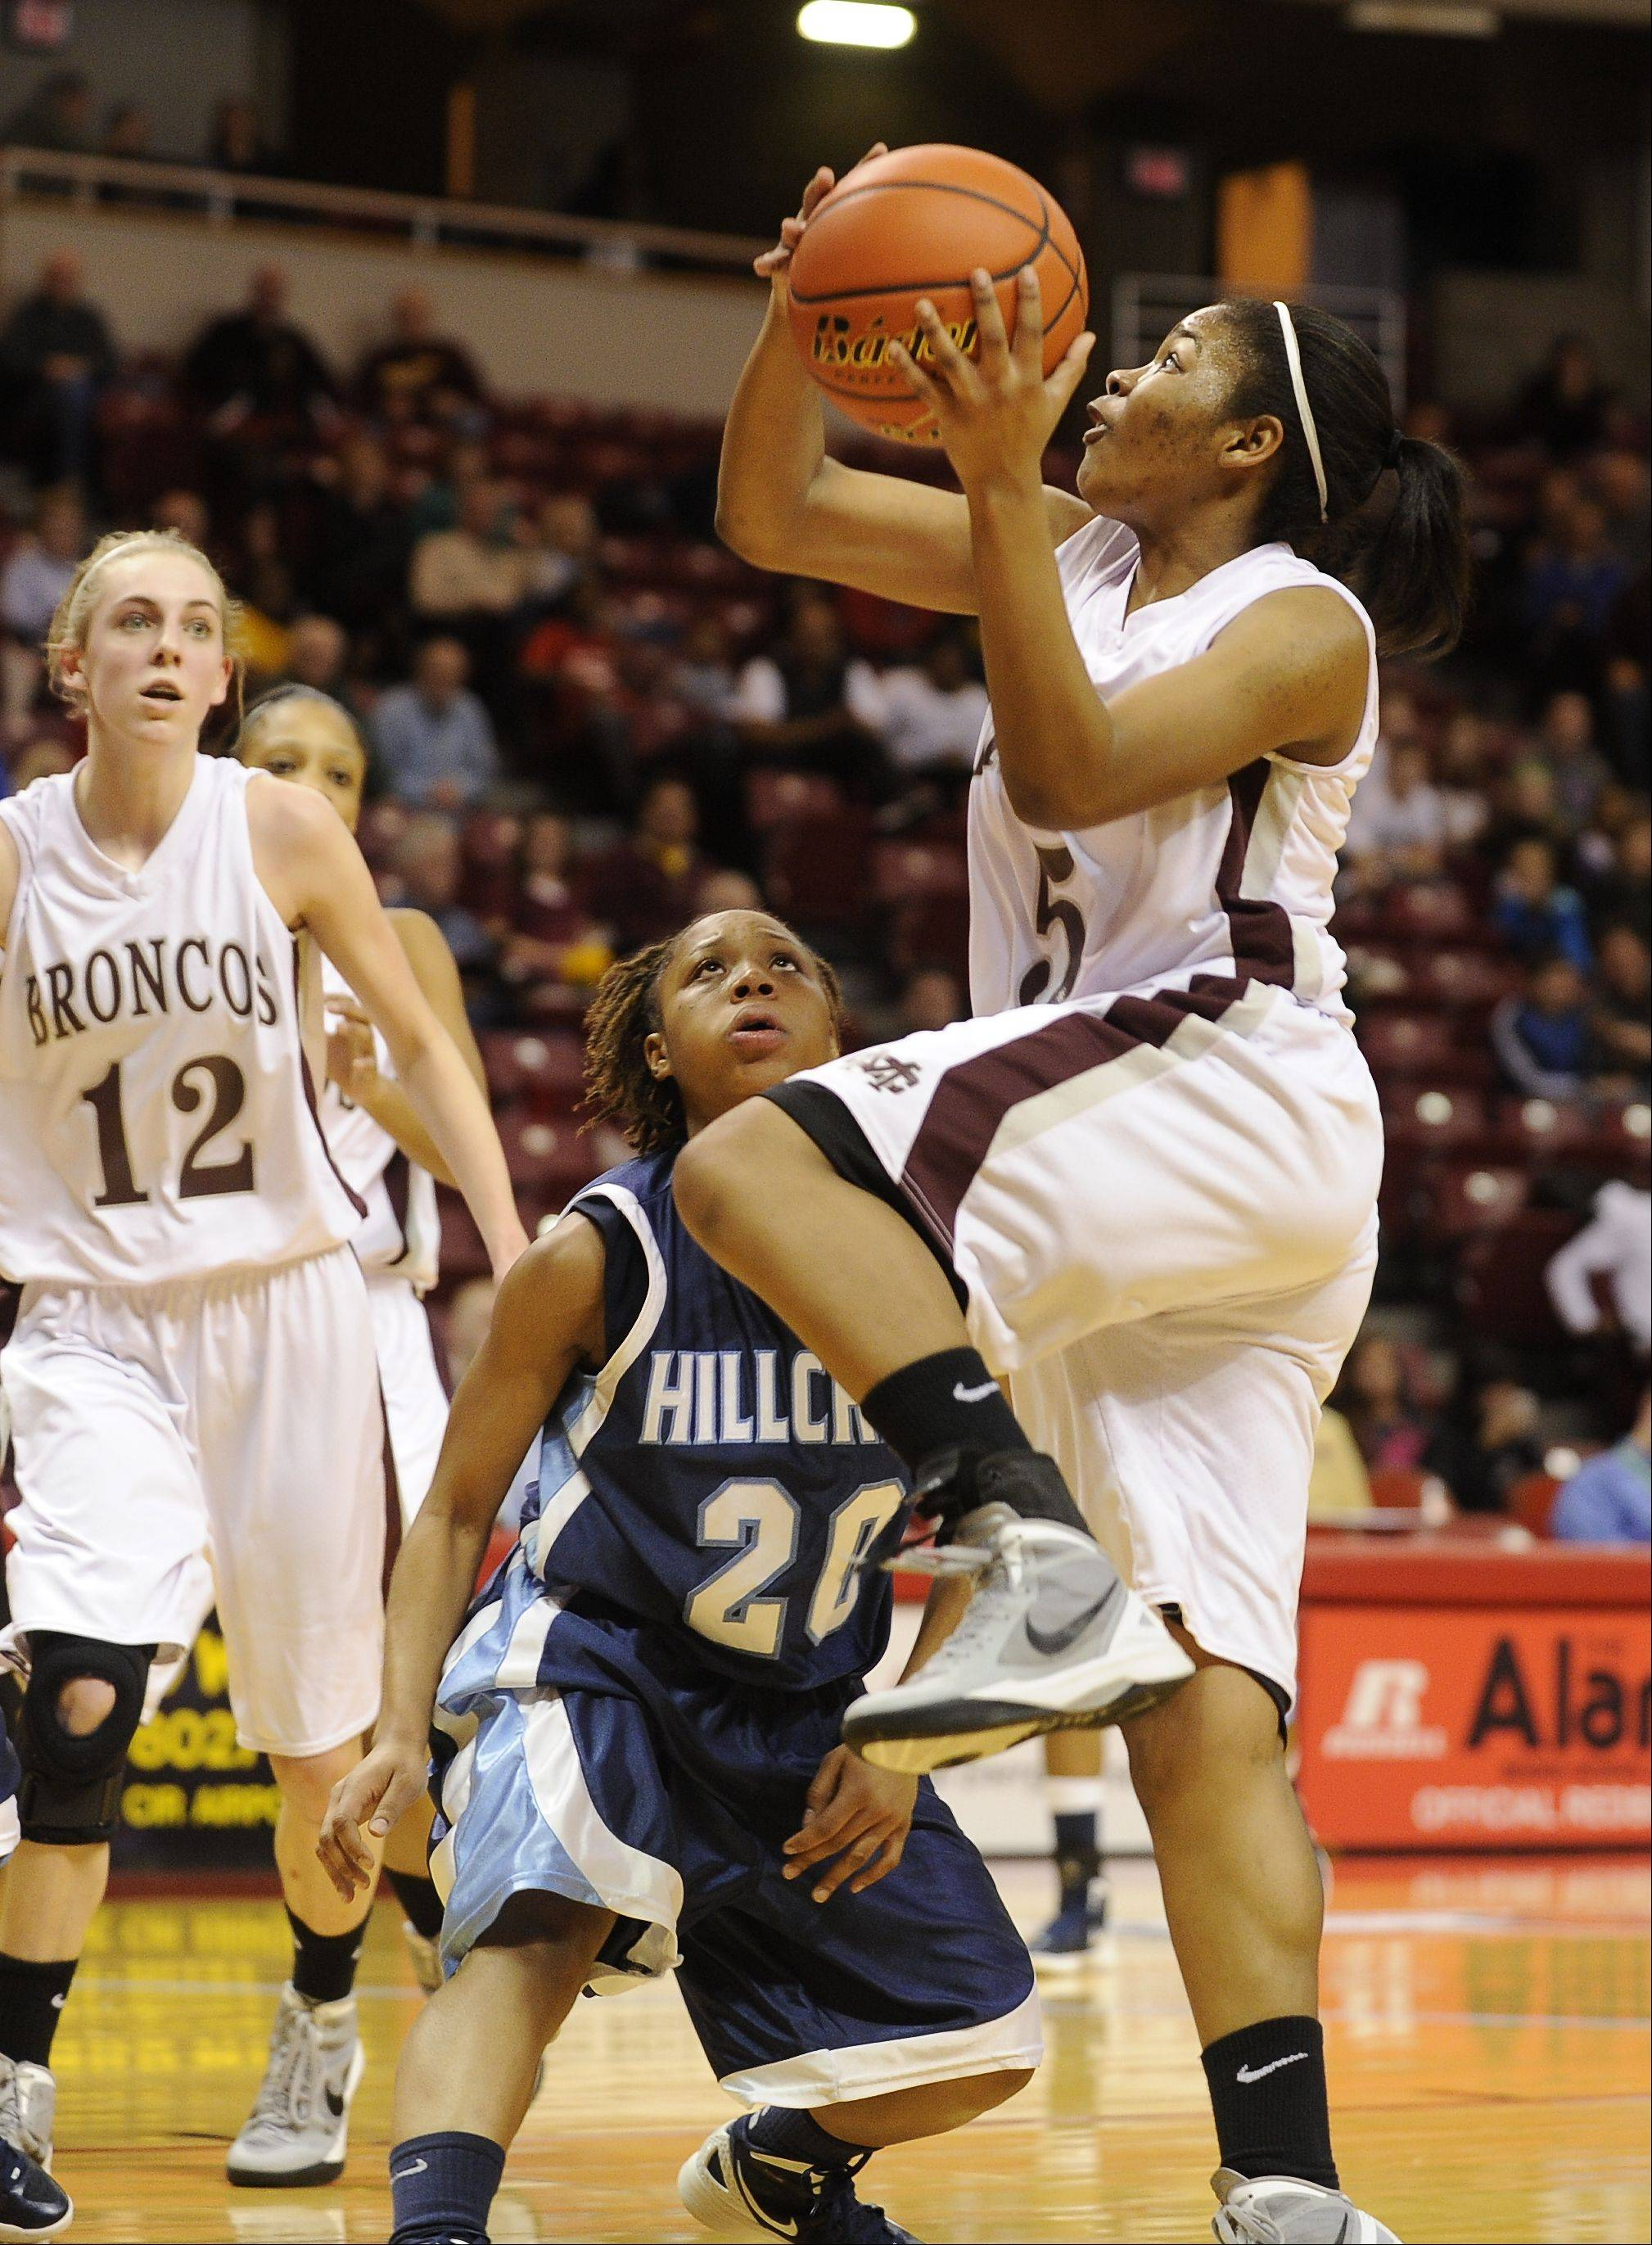 Montini vs. Hillcrest in Class 3A state girls basketball semifinals in Normal, IL at Illinois State University.